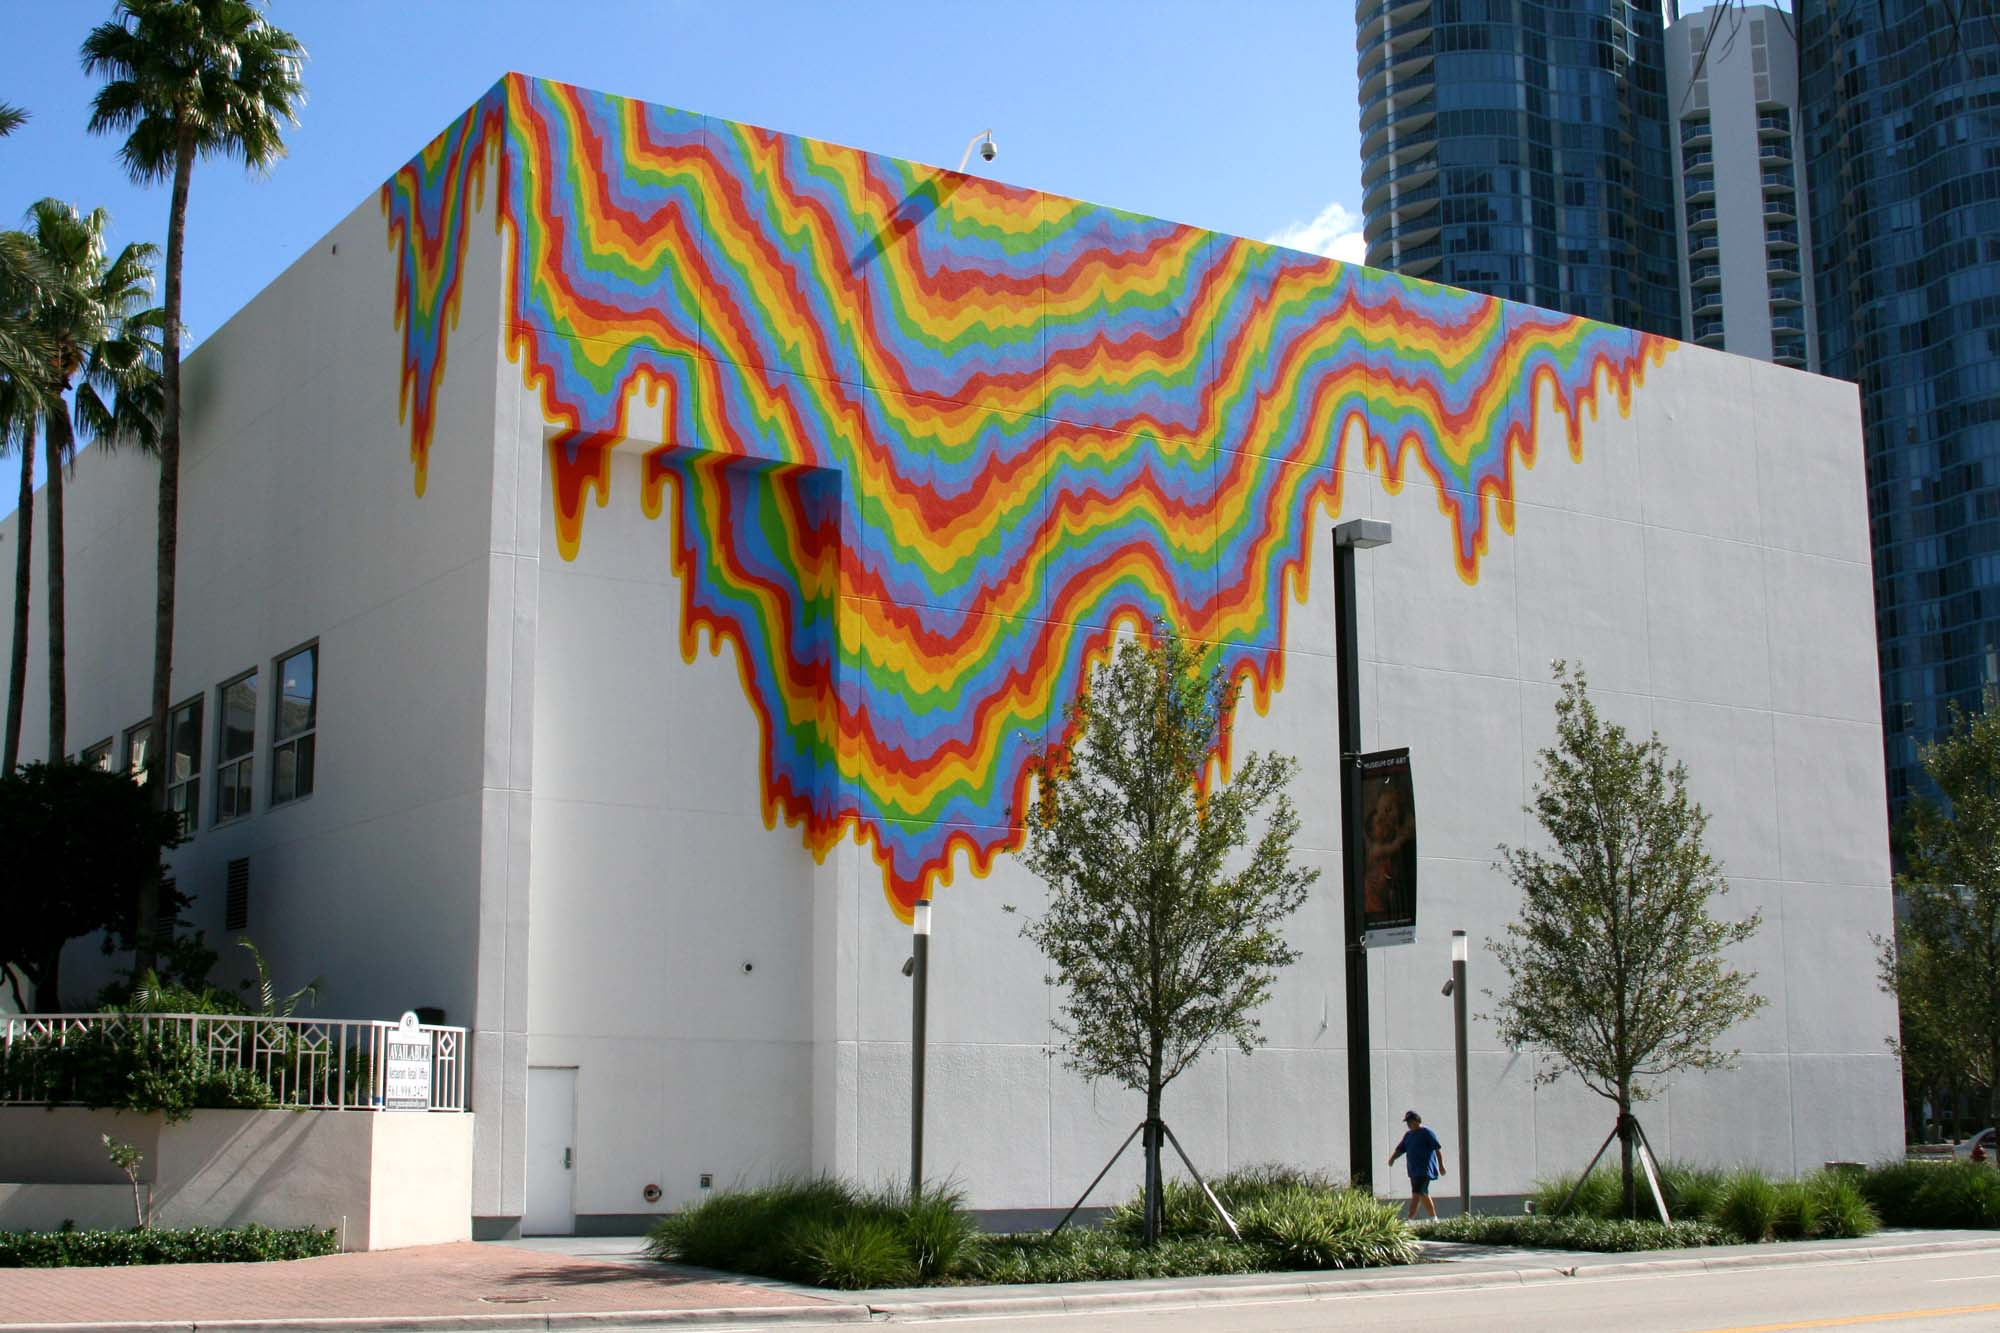 Jen Stark, Acid-Free, 2011, wall painting commissioned by NSU Art Museum Fort Lauderdale, gift of Tina and Carlo Bilotti, by exchange. Located on Andrews Avenue side of building.